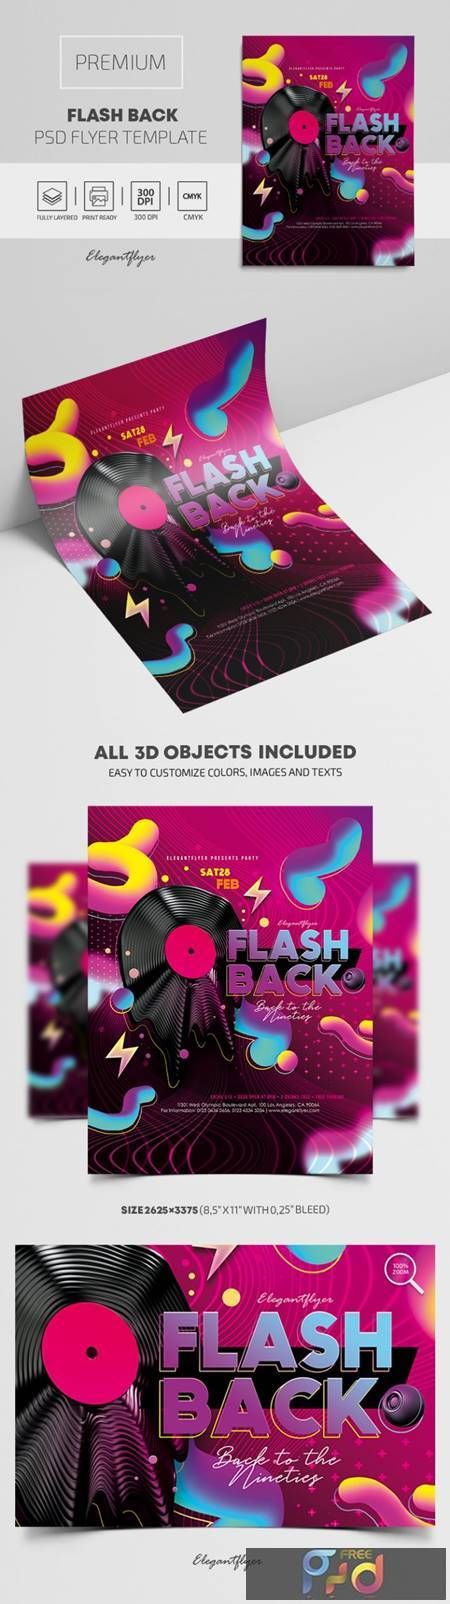 Flash Back – Premium PSD Flyer Template 117816 1